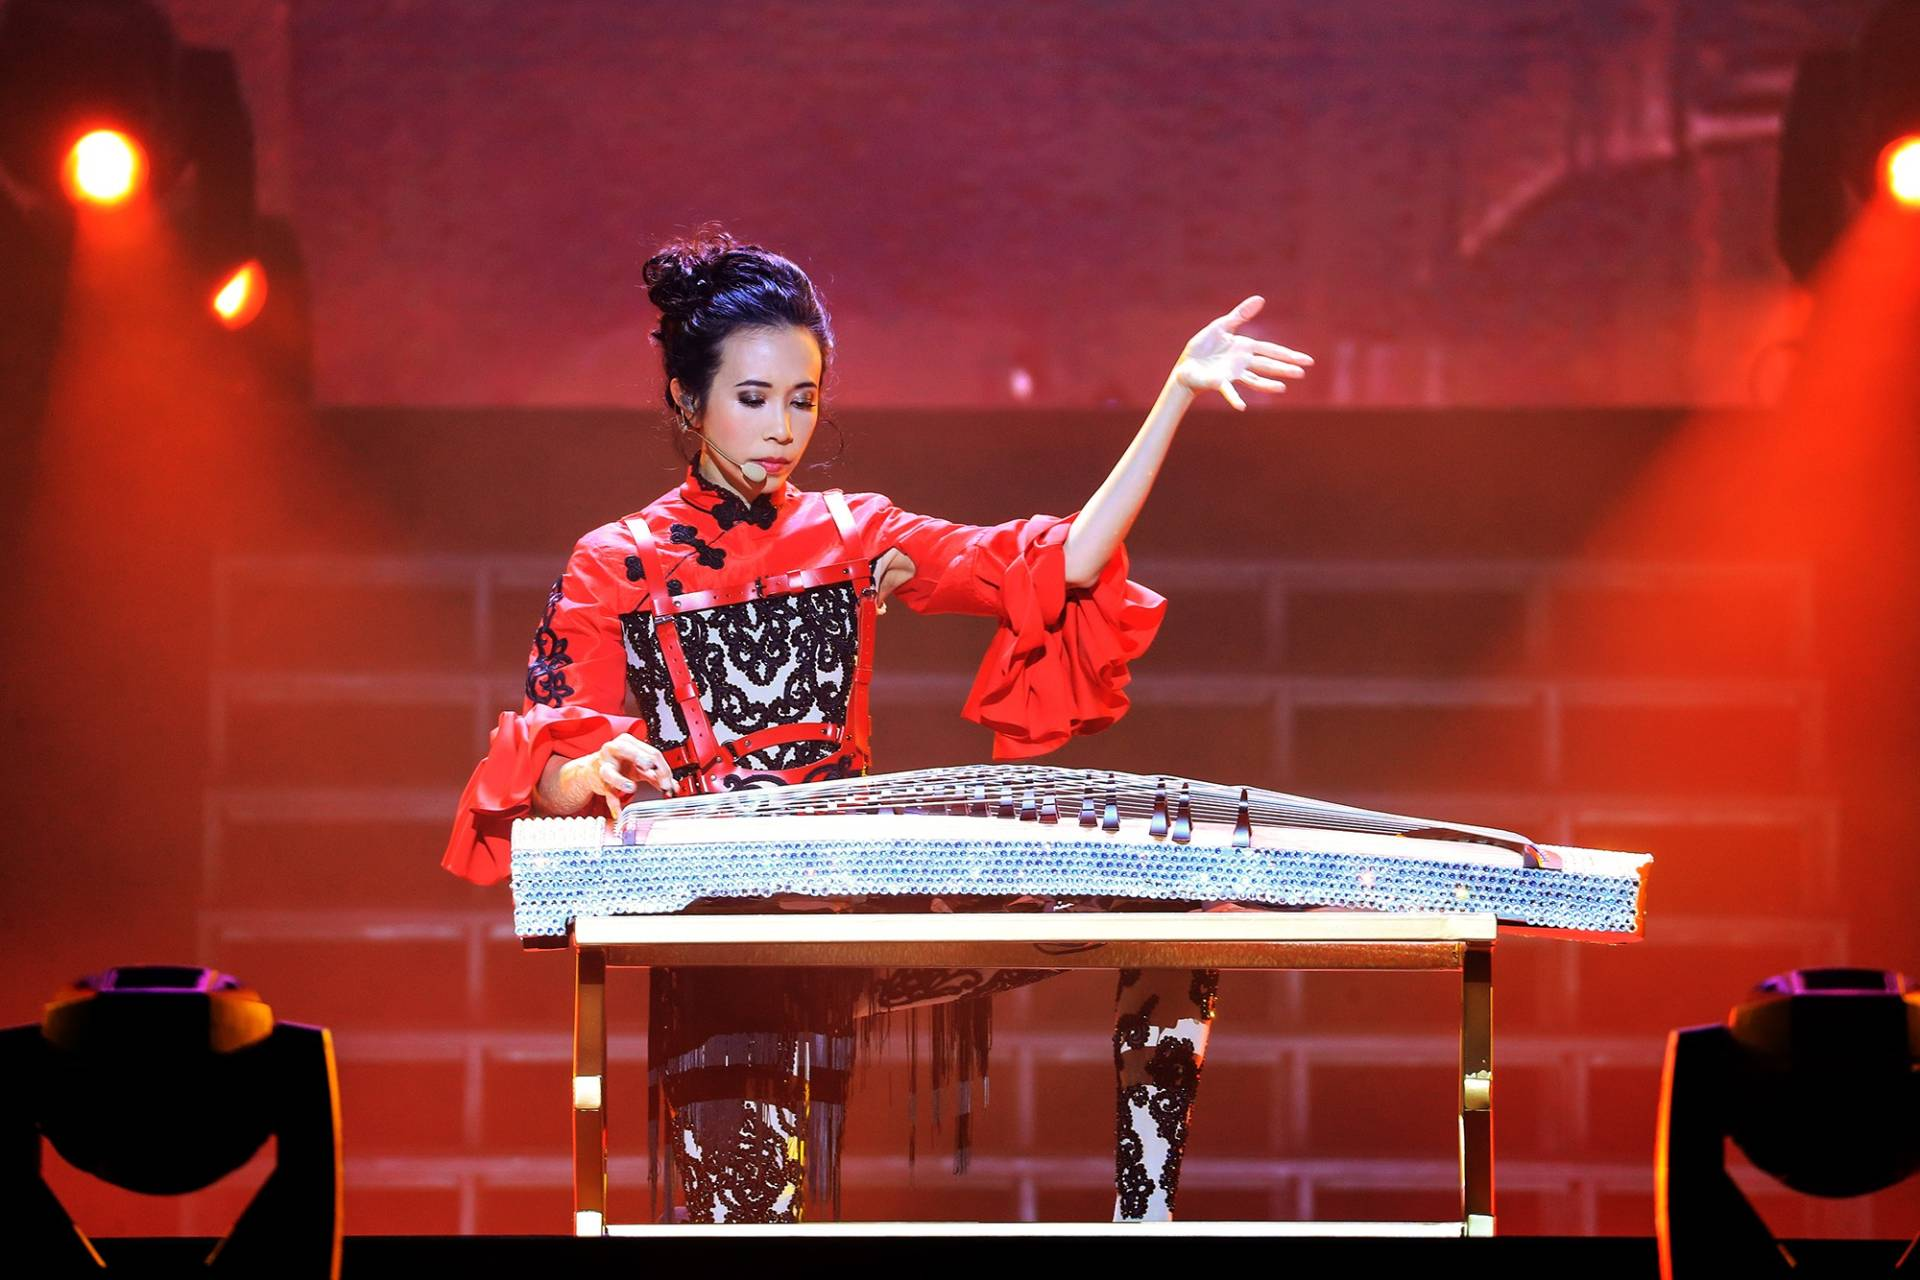 Mok's multiple talents were on display, including her gu zheng-playing skills.